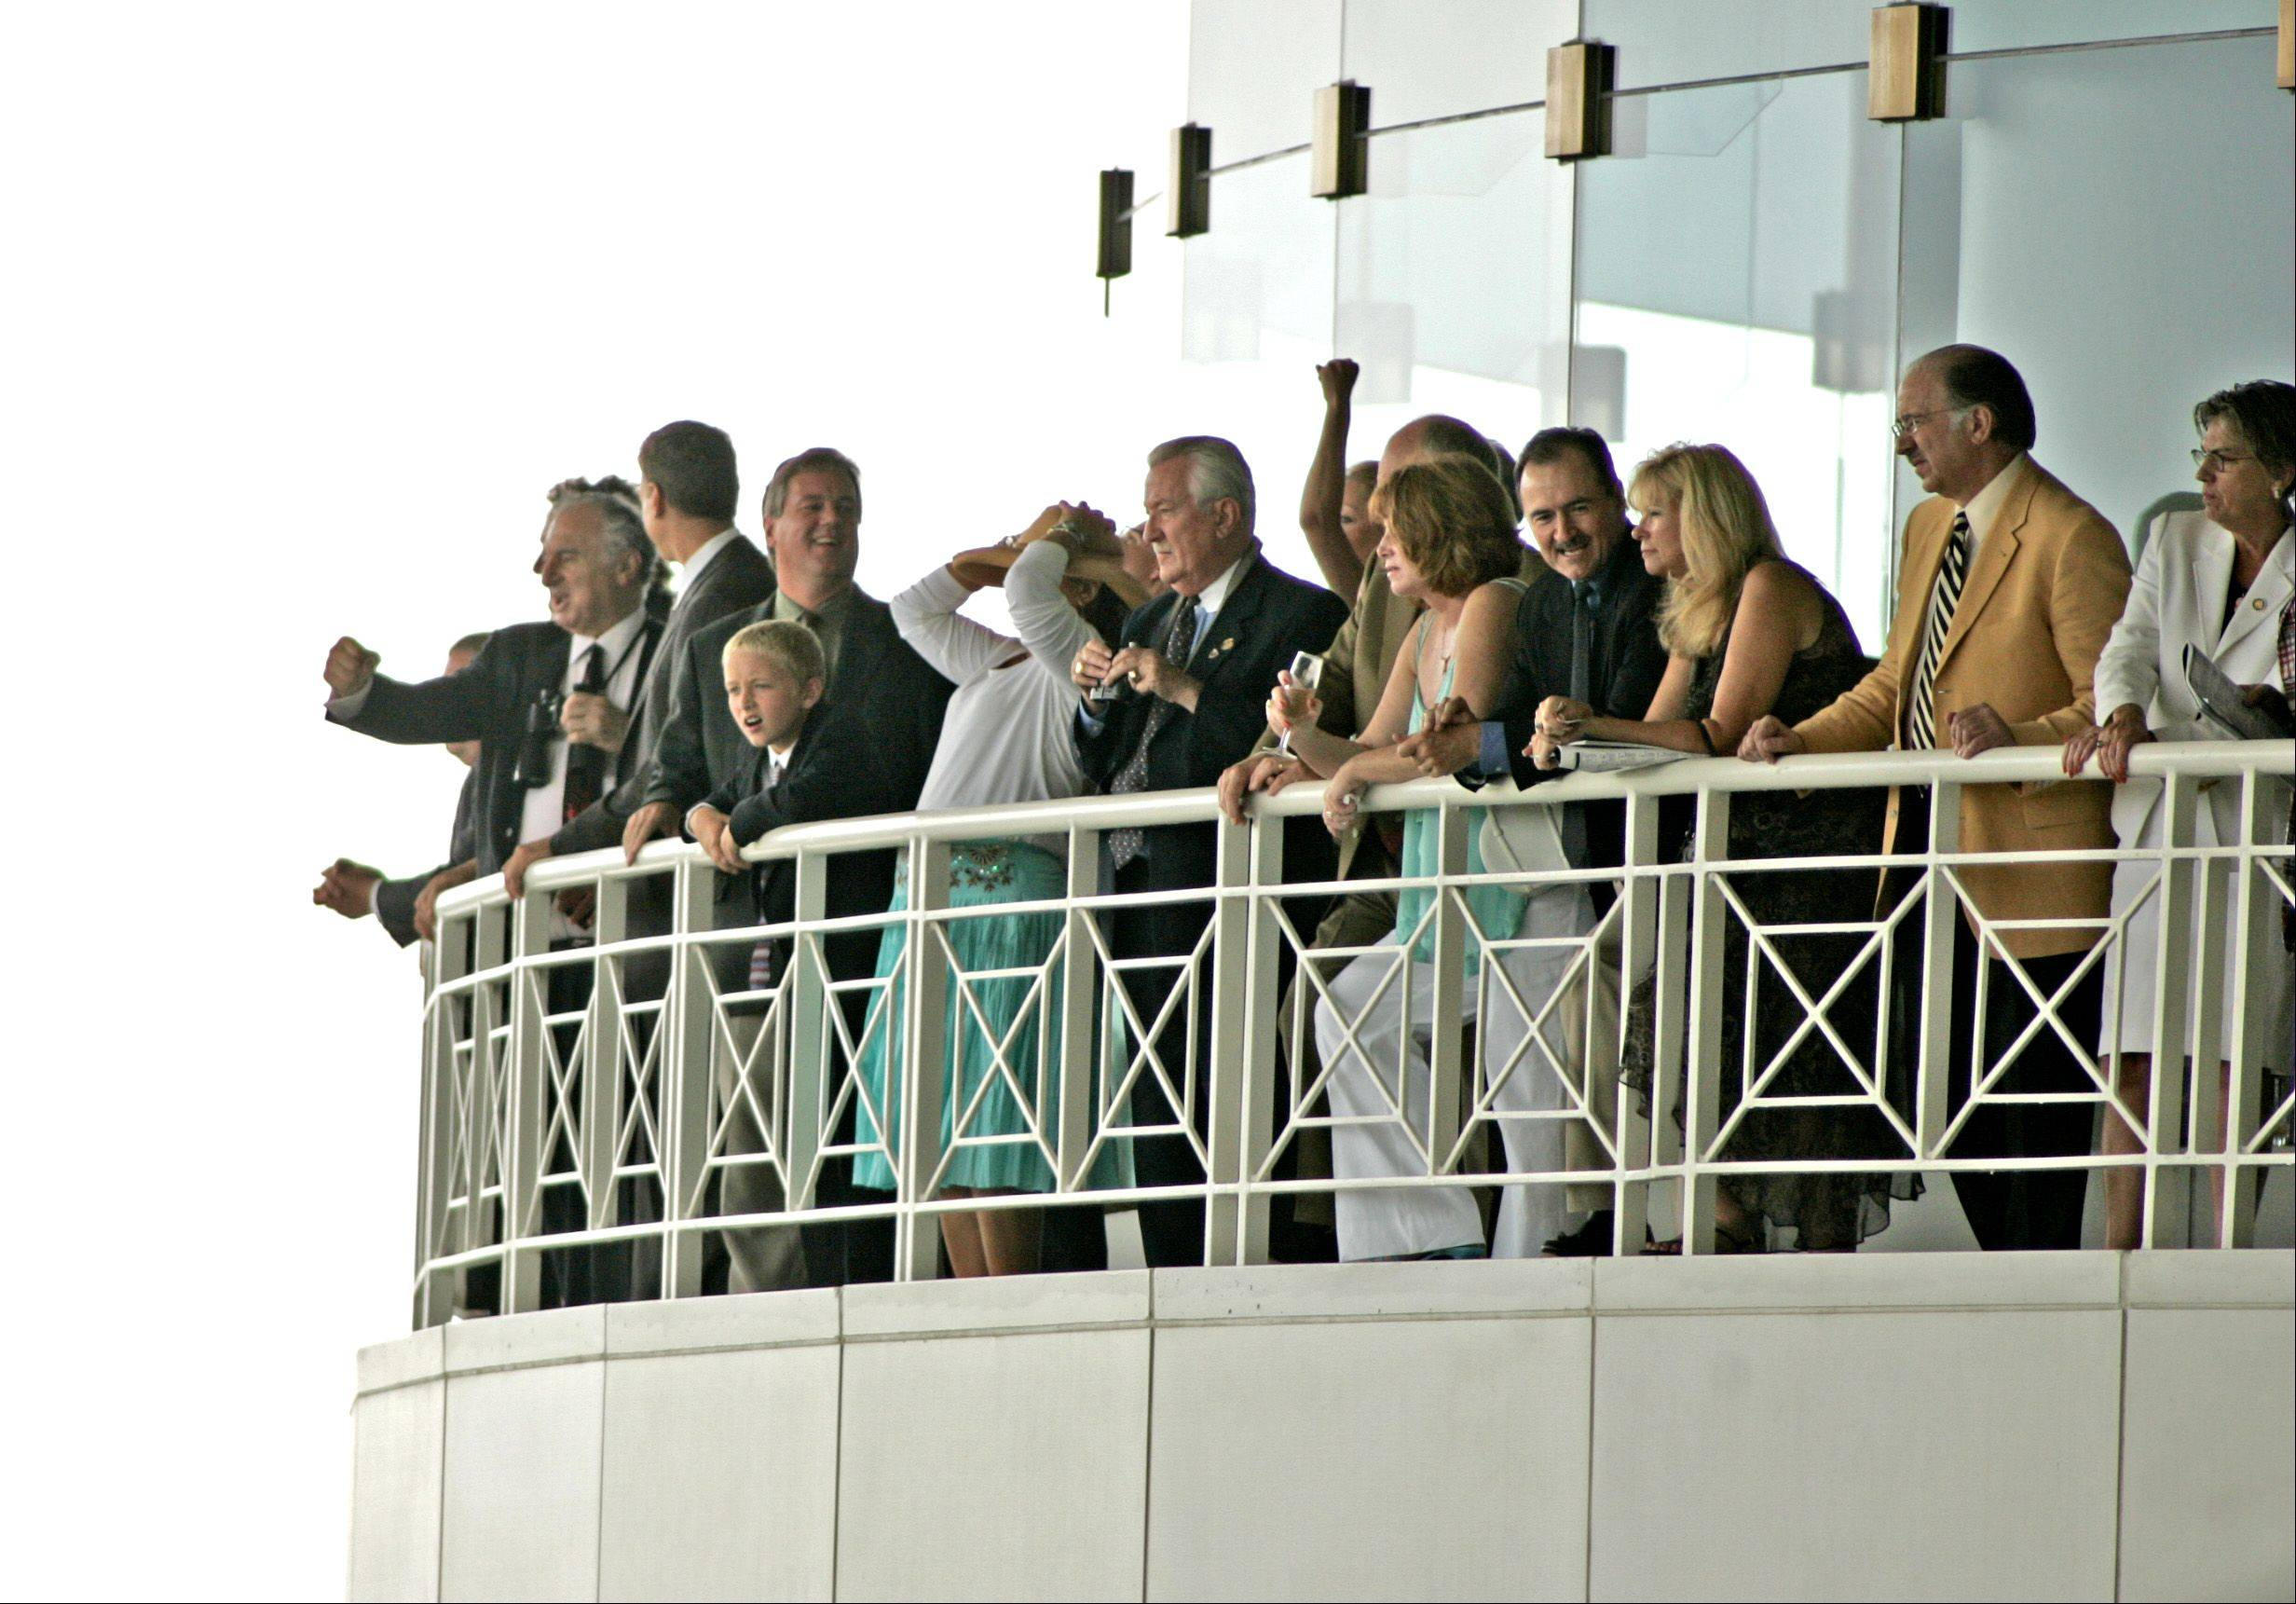 Fans celebrate during the 2005 Arlington Million